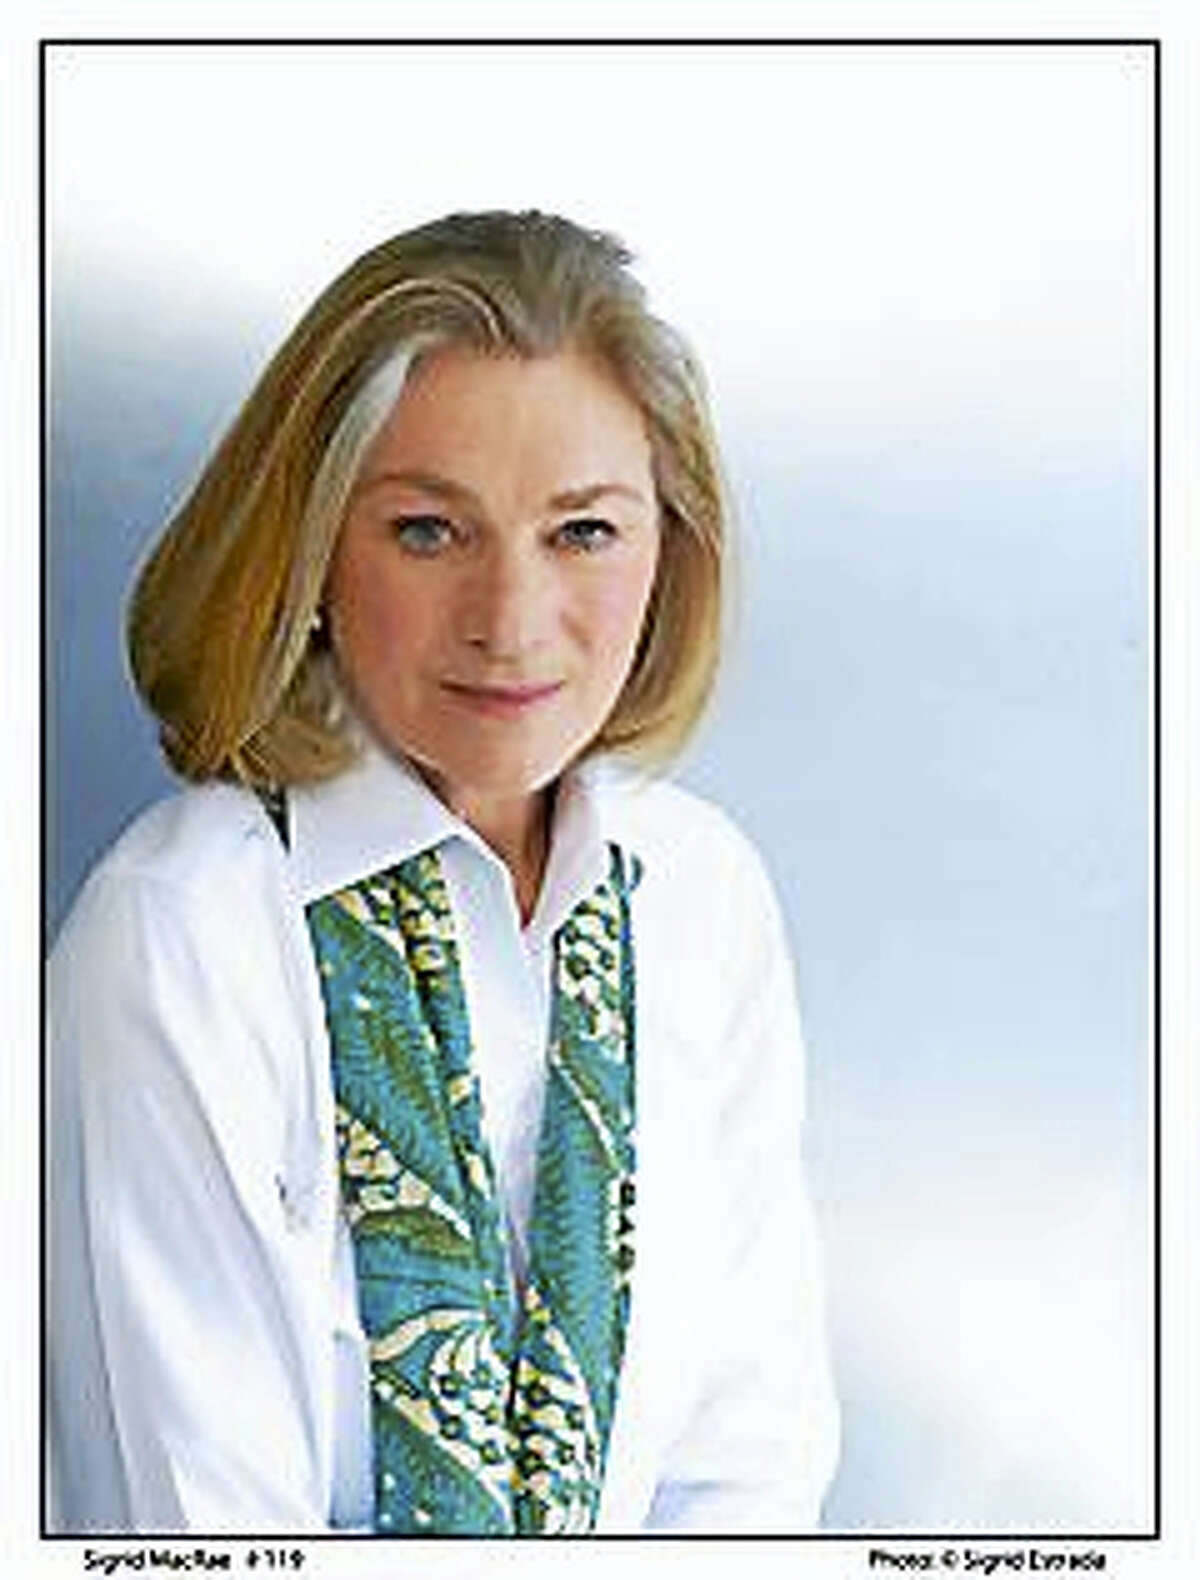 """The Women's Forum of Litchfield welcomes Sigrid MacRae to speak about her book """"A World Elsewhere: An American Woman in Wartime Germany"""" beginning at 2:30pm on Thursday, May 5, at the Litchfield Community Center at 421 Bantam Road in Litchfield. The event is open non-Forum members with a $10 fee at the door, which includes a High Tea reception. For more information, call 860-605-7207 or Email womensforumoflitchfield.org."""